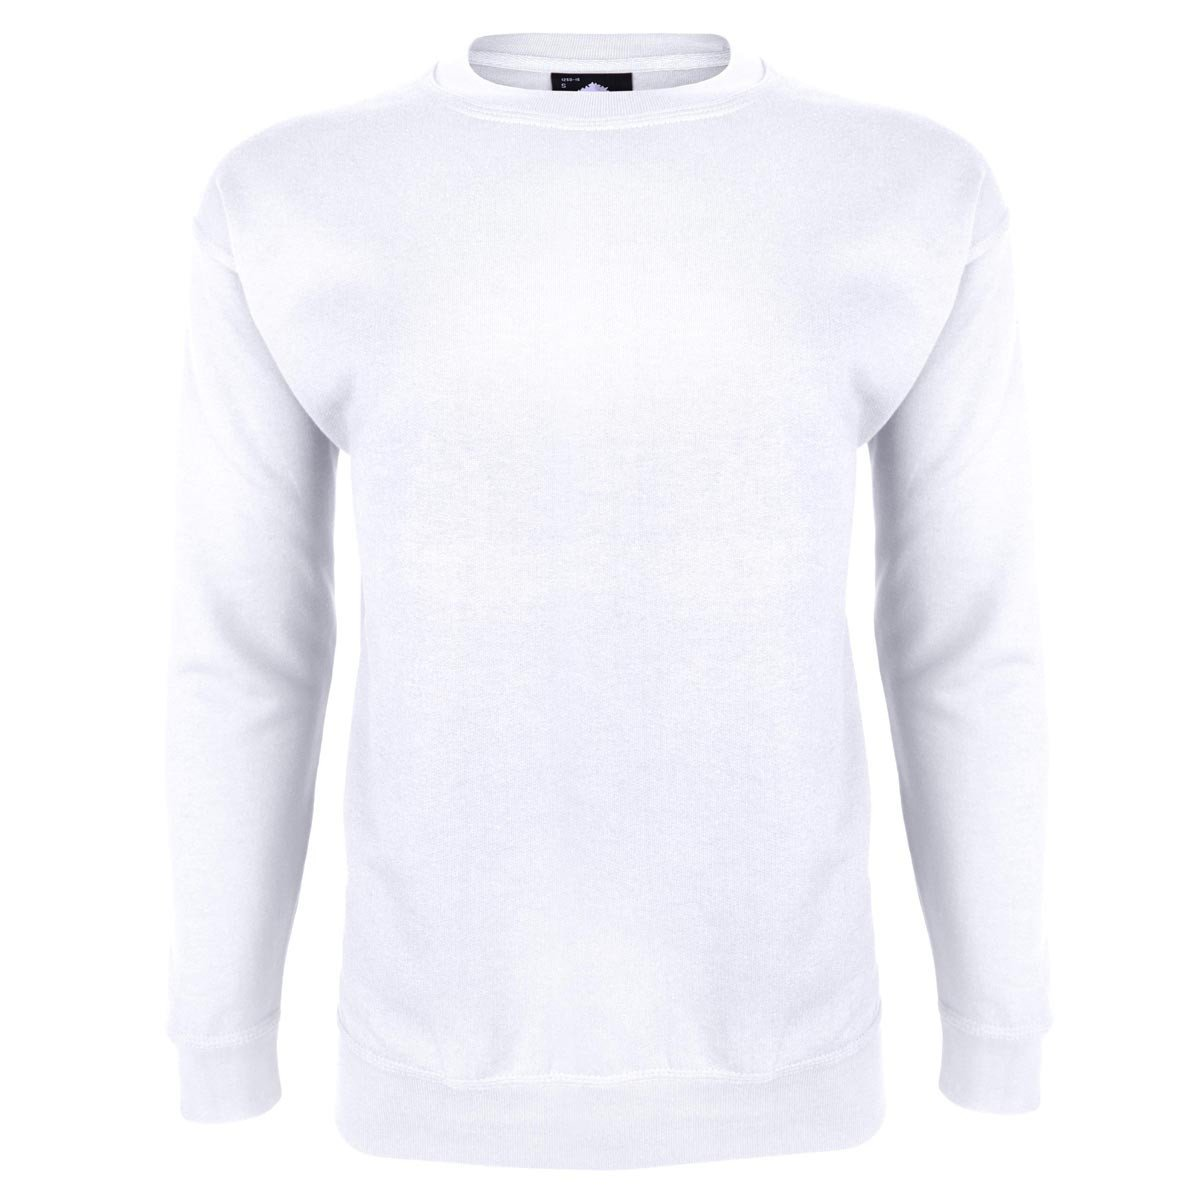 Kitrose Sweat Shirt Men's Sweat Shirt Image Ash 2XL